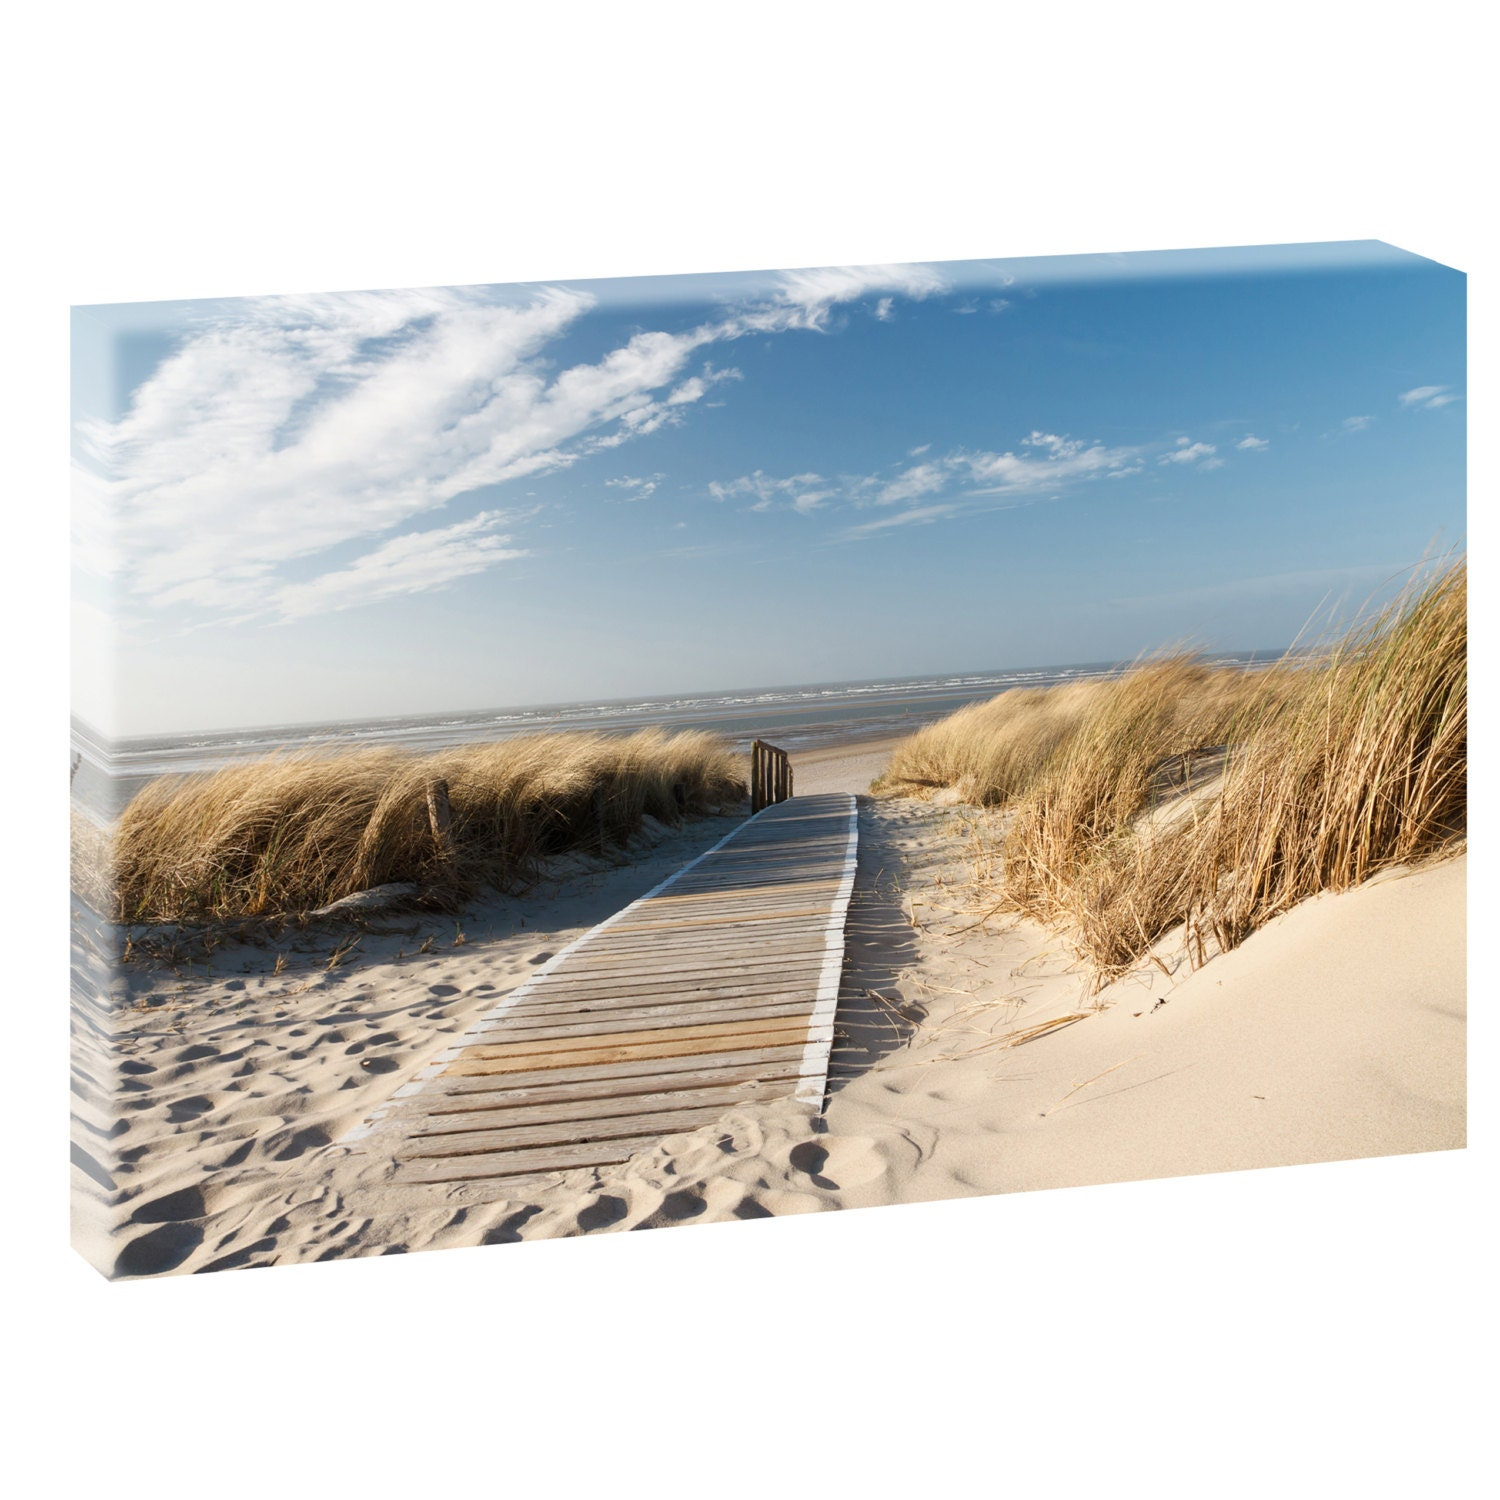 nordseestrand bild strand meer nordsee poster leinwand xxl. Black Bedroom Furniture Sets. Home Design Ideas